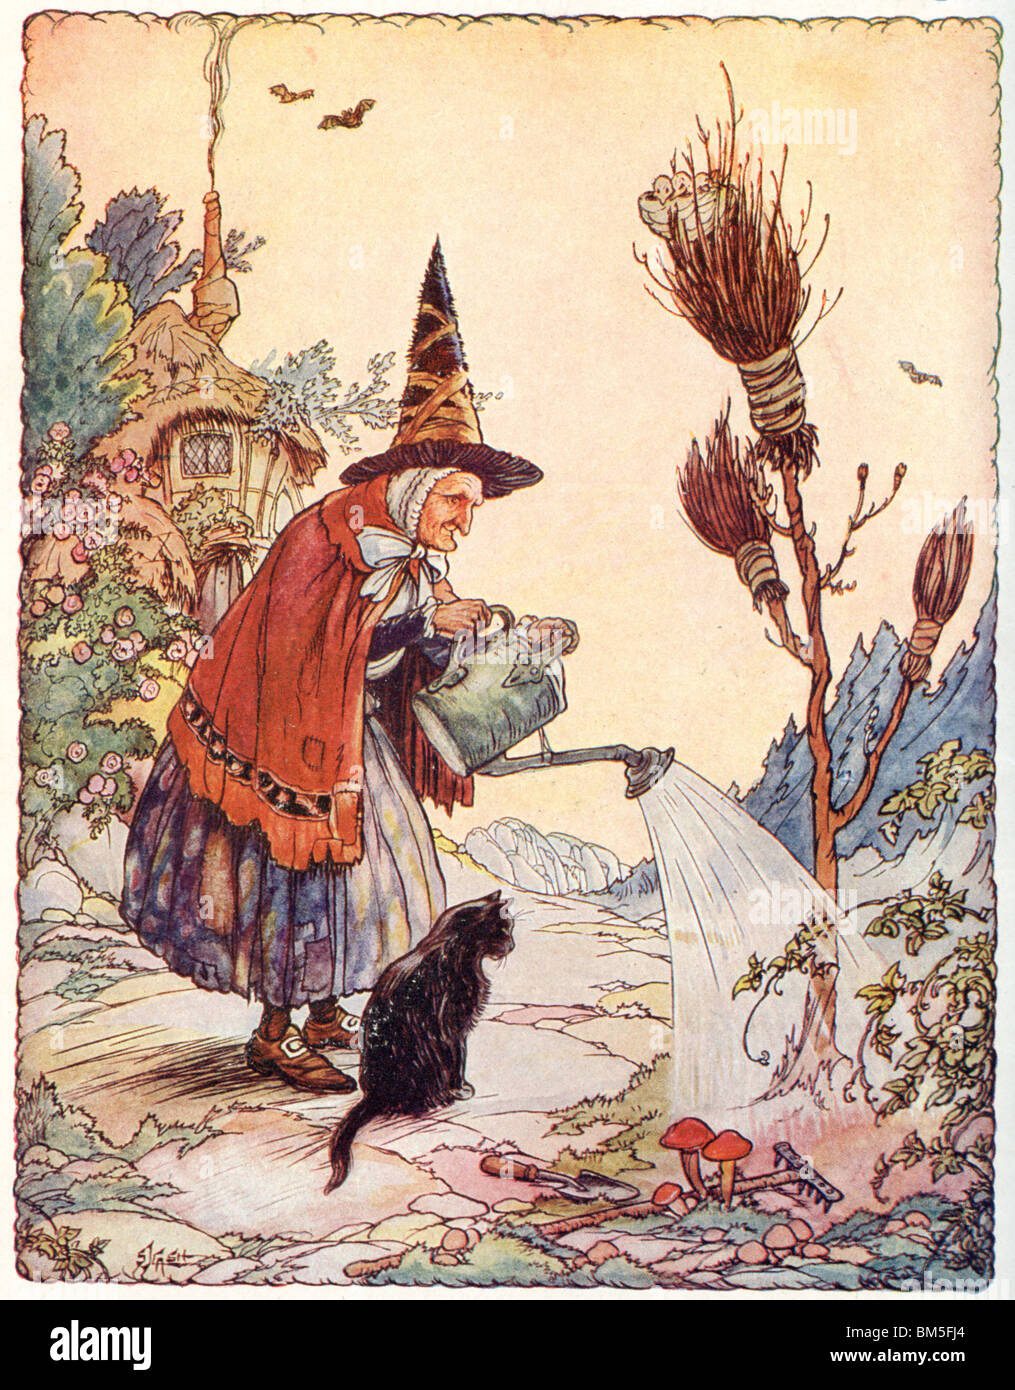 A Busy Day for the Old Witch - Stock Image